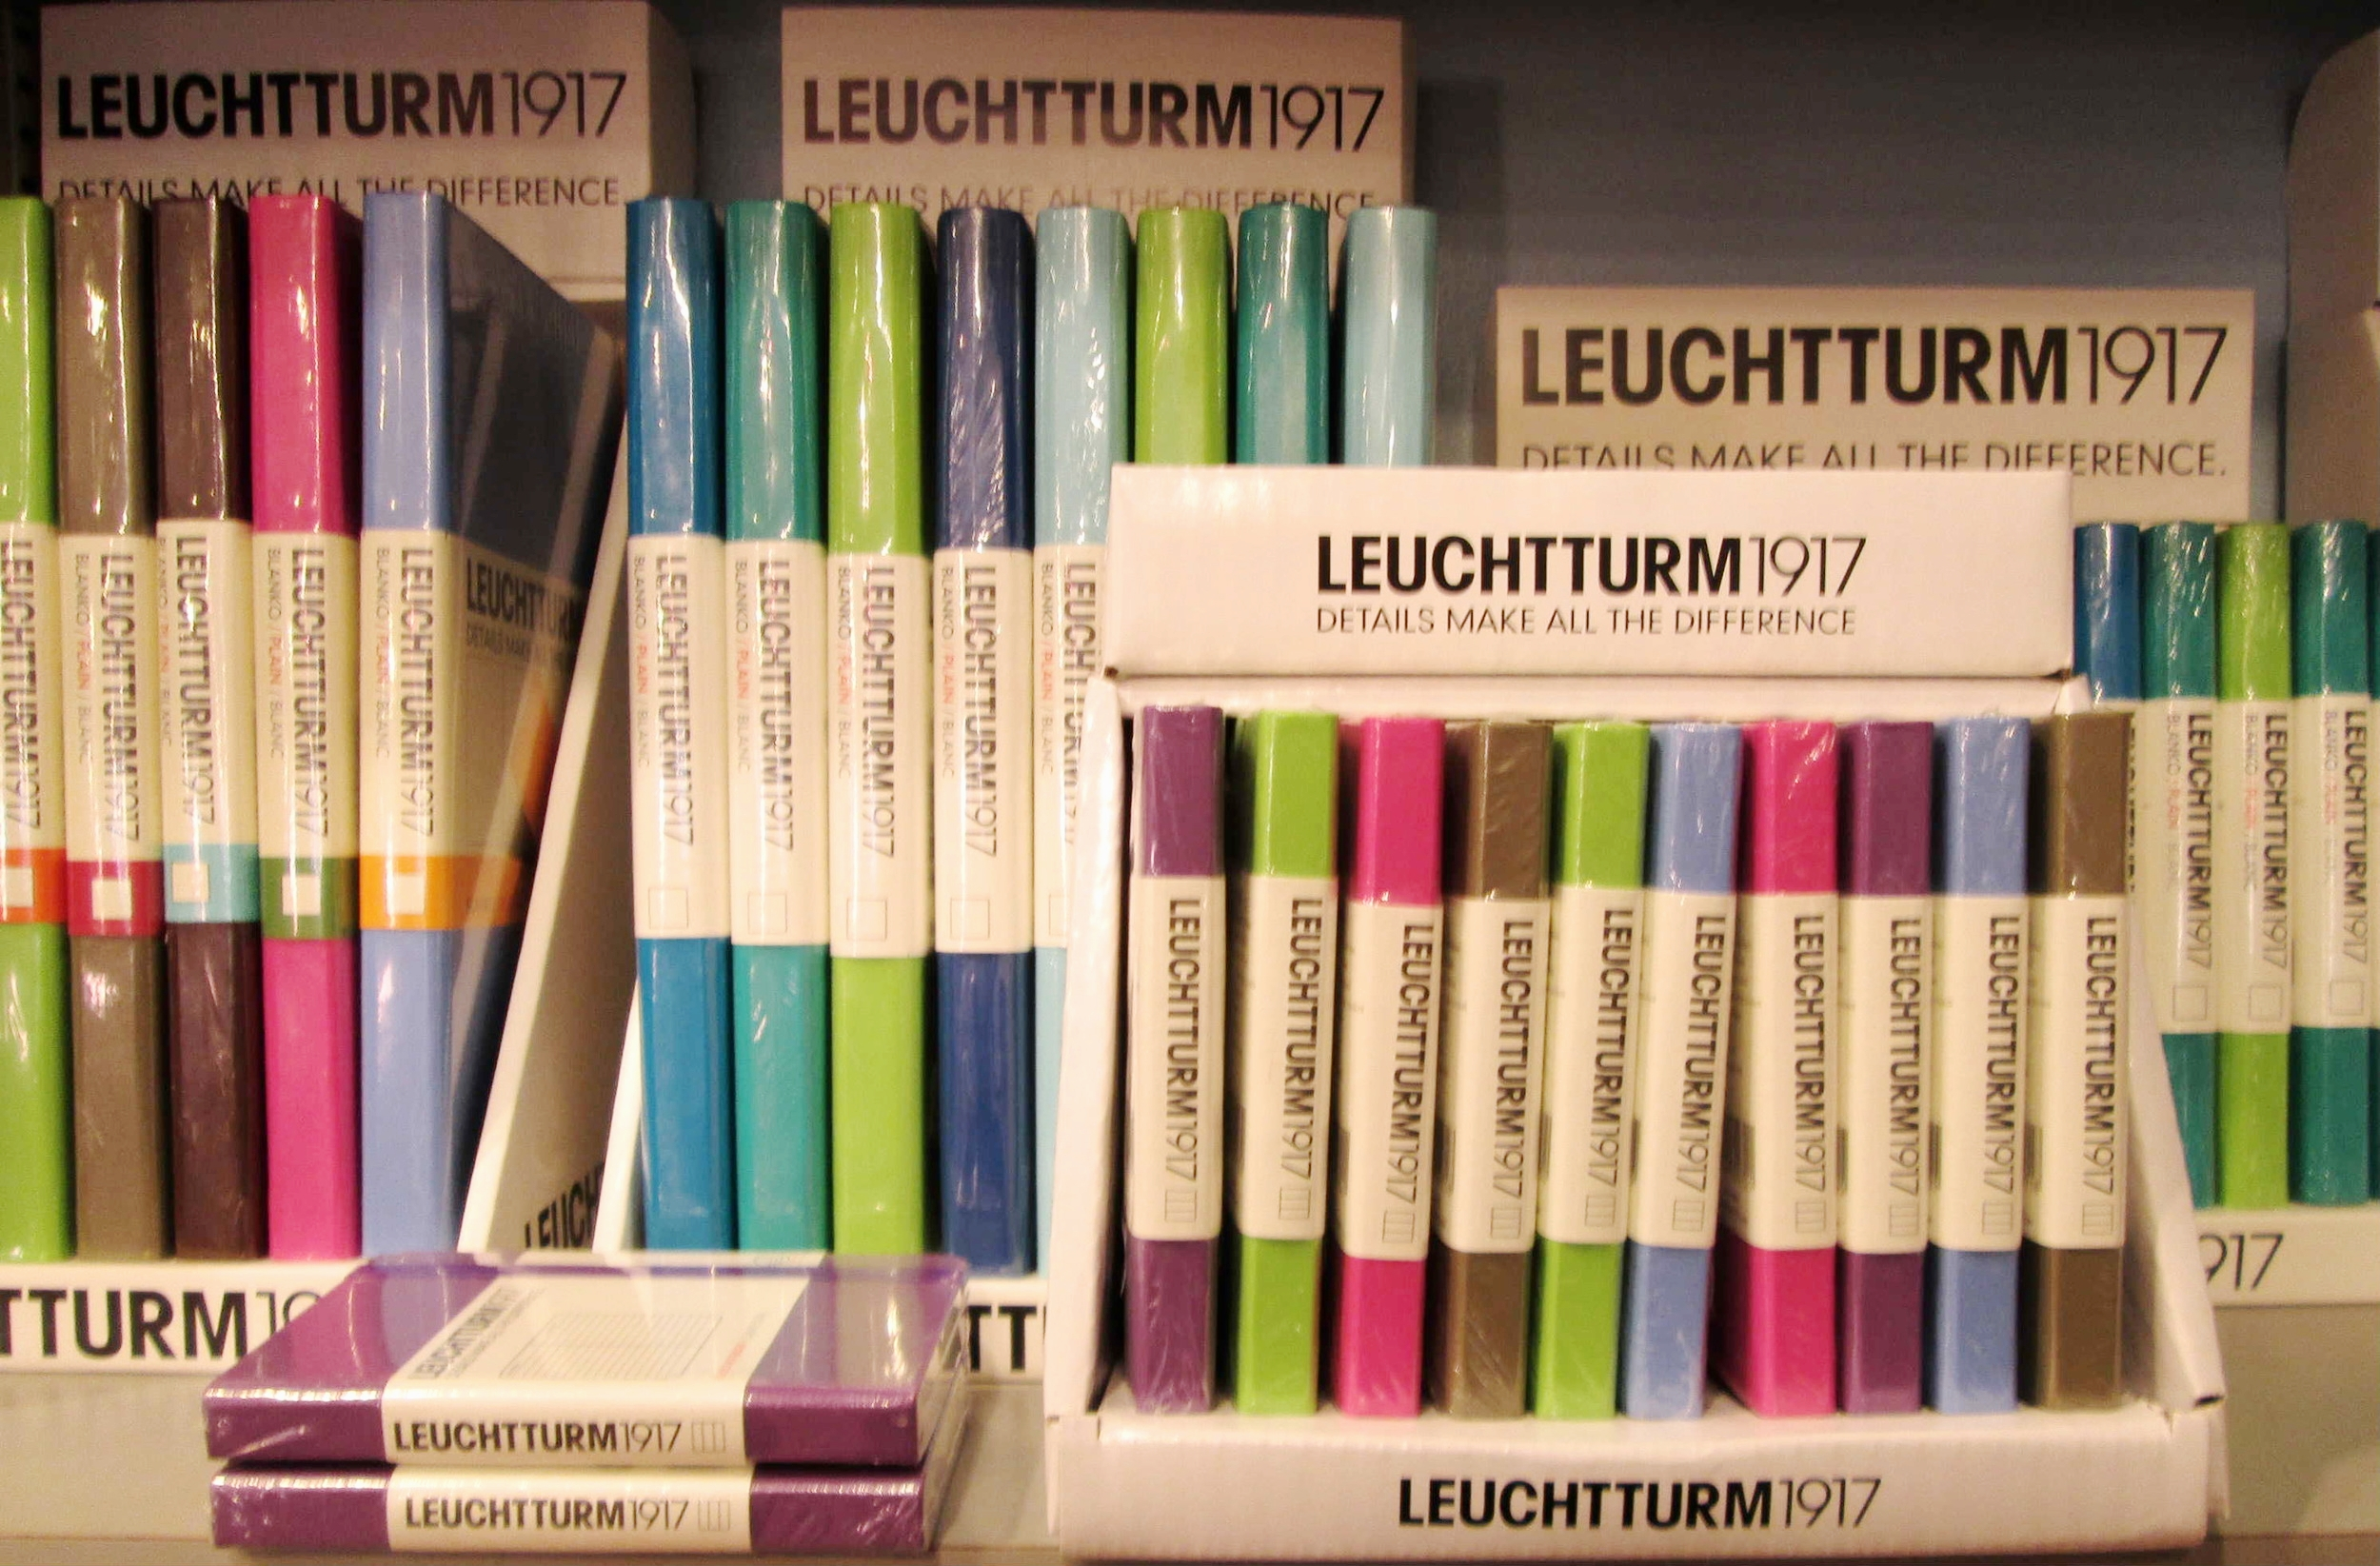 Journals from Leuchtturm, Moleskine, Peter Pauper, Gallery Leather, Paperthinks, Paperblanks and more!